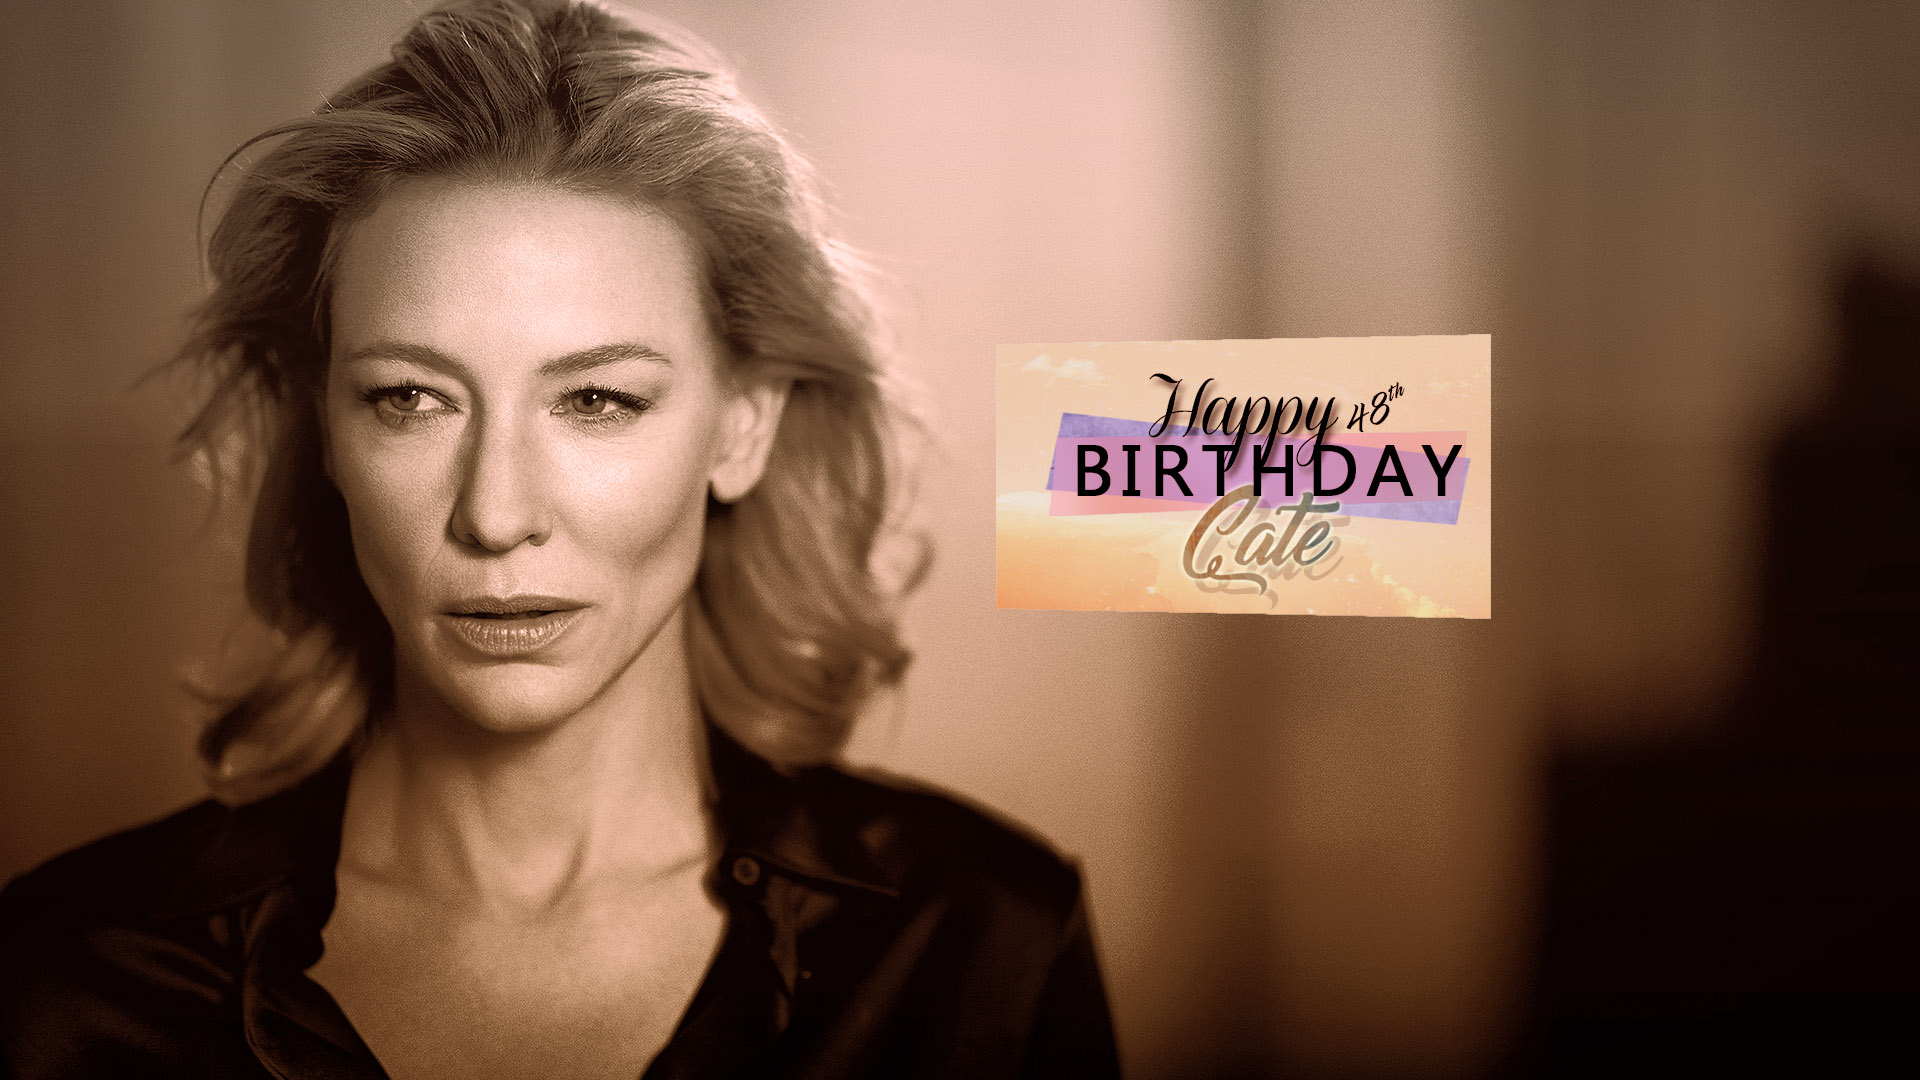 Happy Birthday Cate!